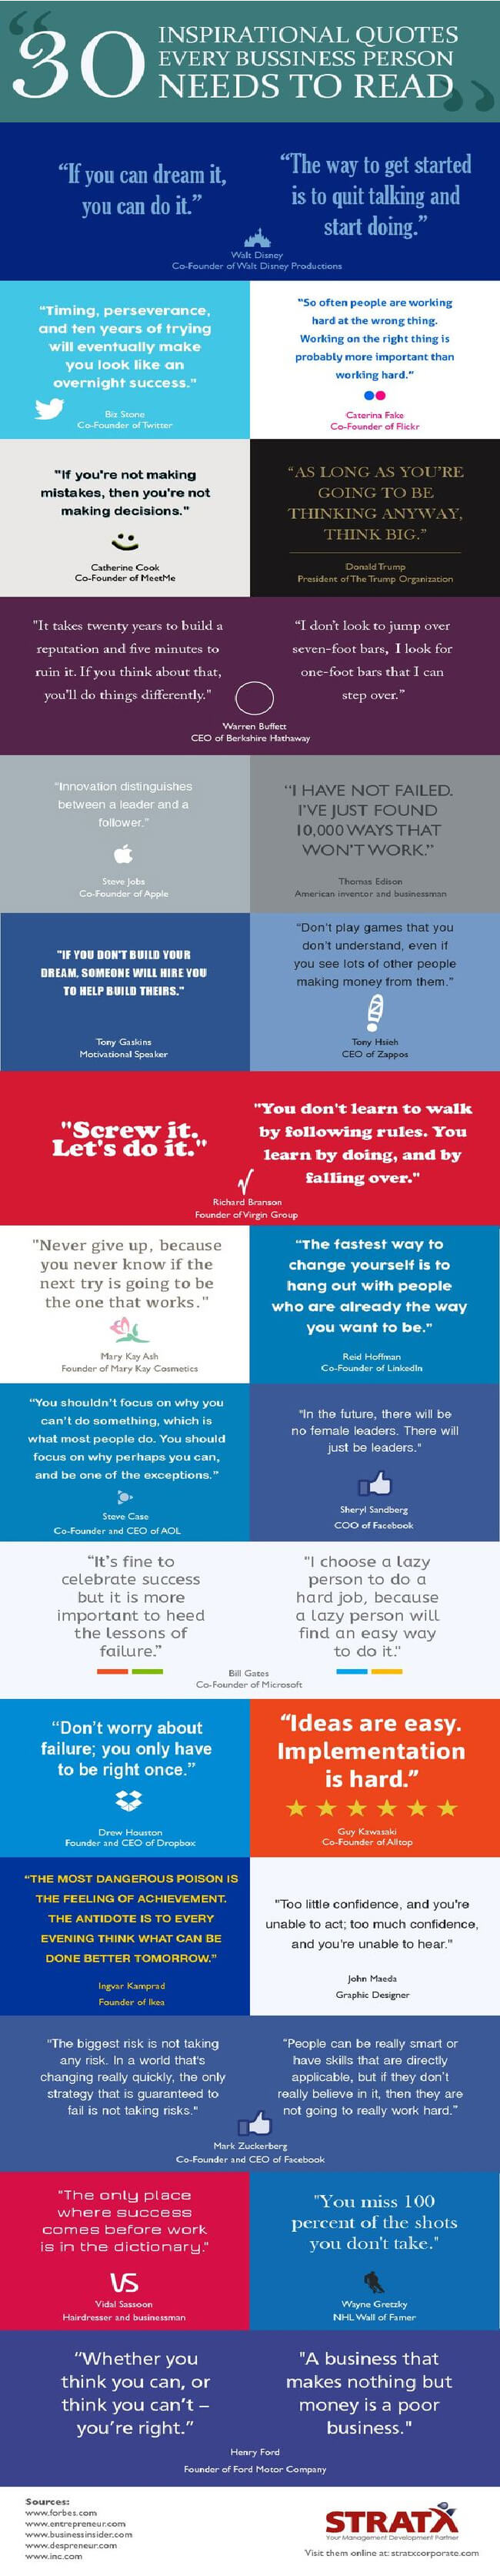 Image titled 30 inspirational quotes every business person needs to read